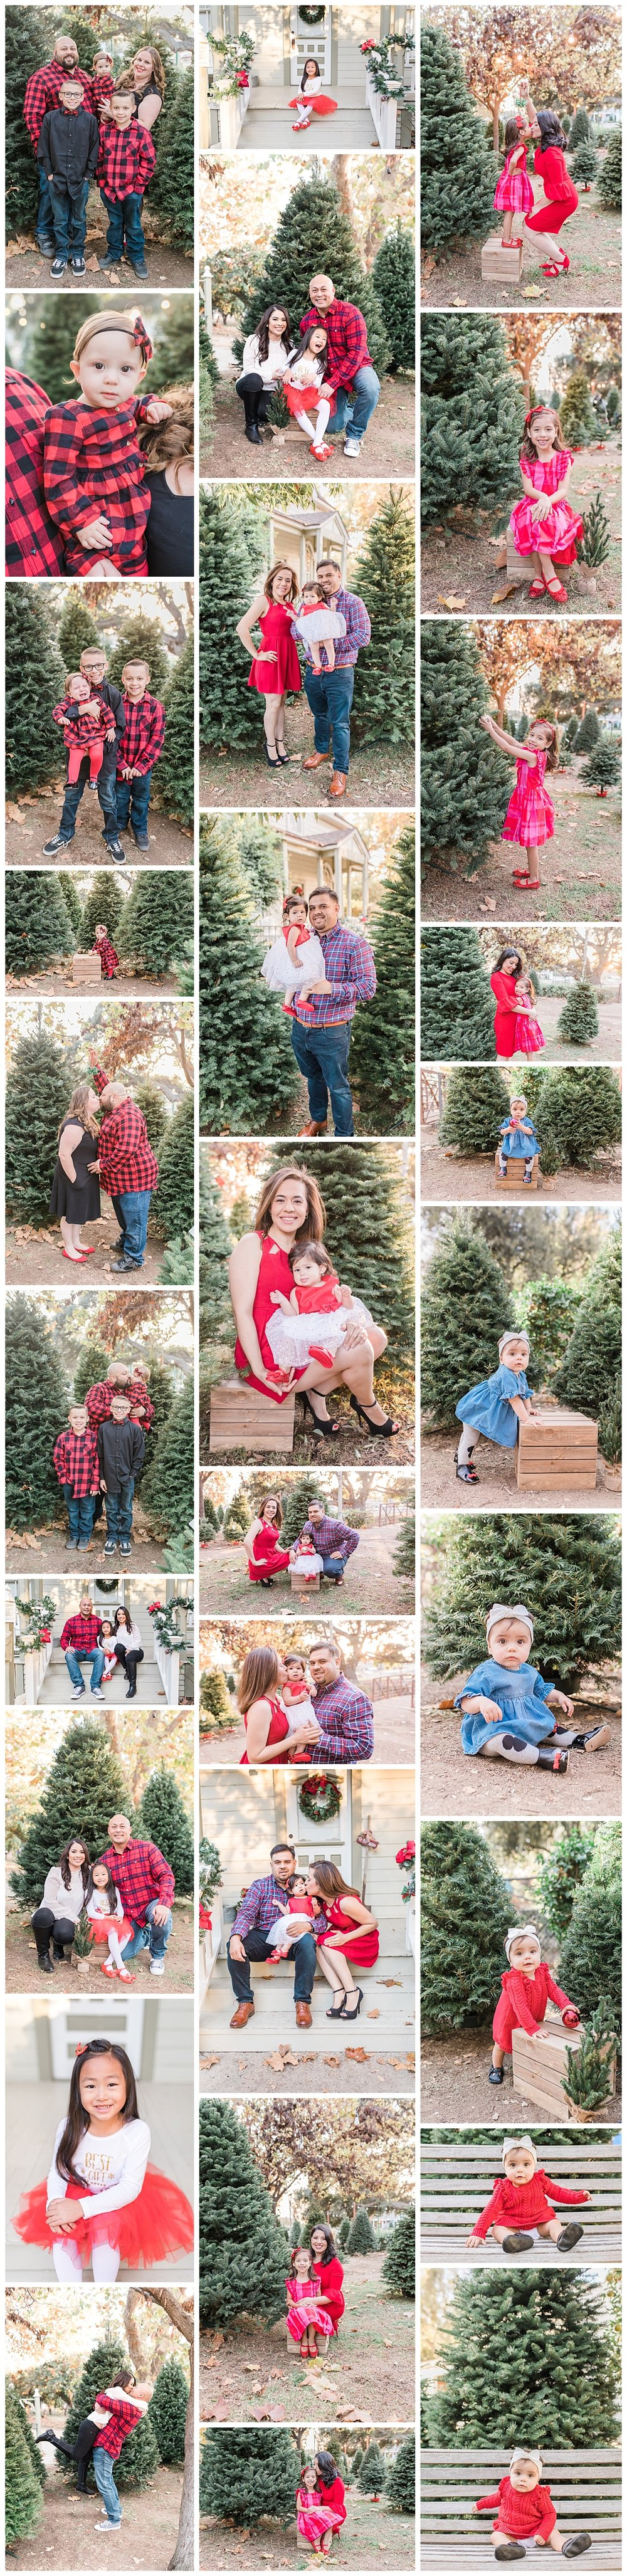 Christmas Tree Farm | Family Photographer | Los Angeles, California